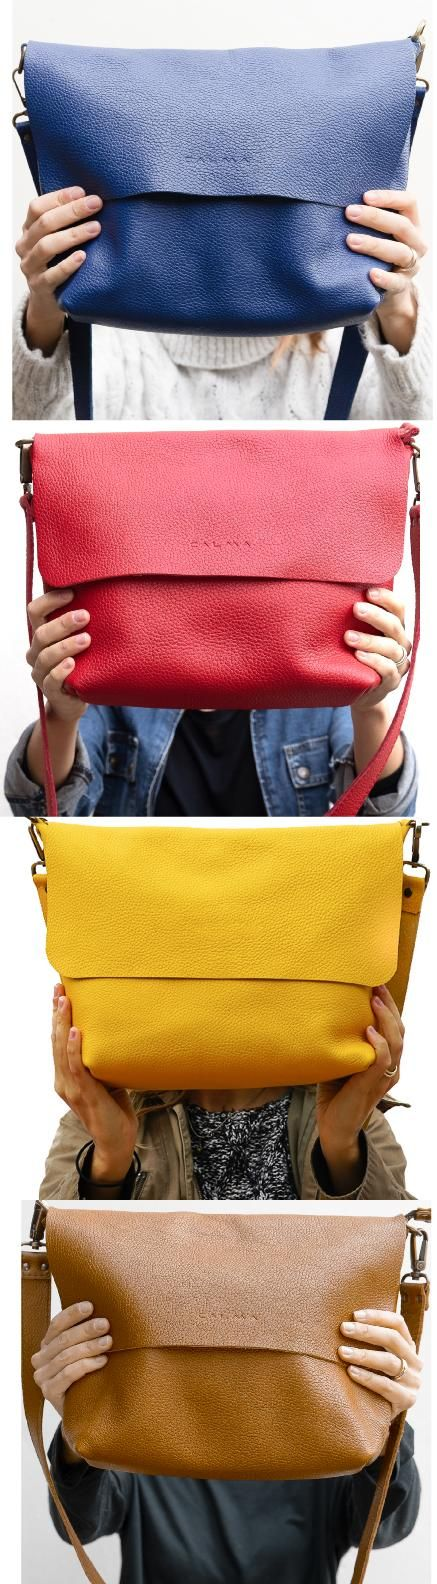 Leather crossbody bag available in 16 colors Very soft handmade yellow leather shoulder bag 100 handmade with the highest quality fullgrain Spanish leather The full grain...